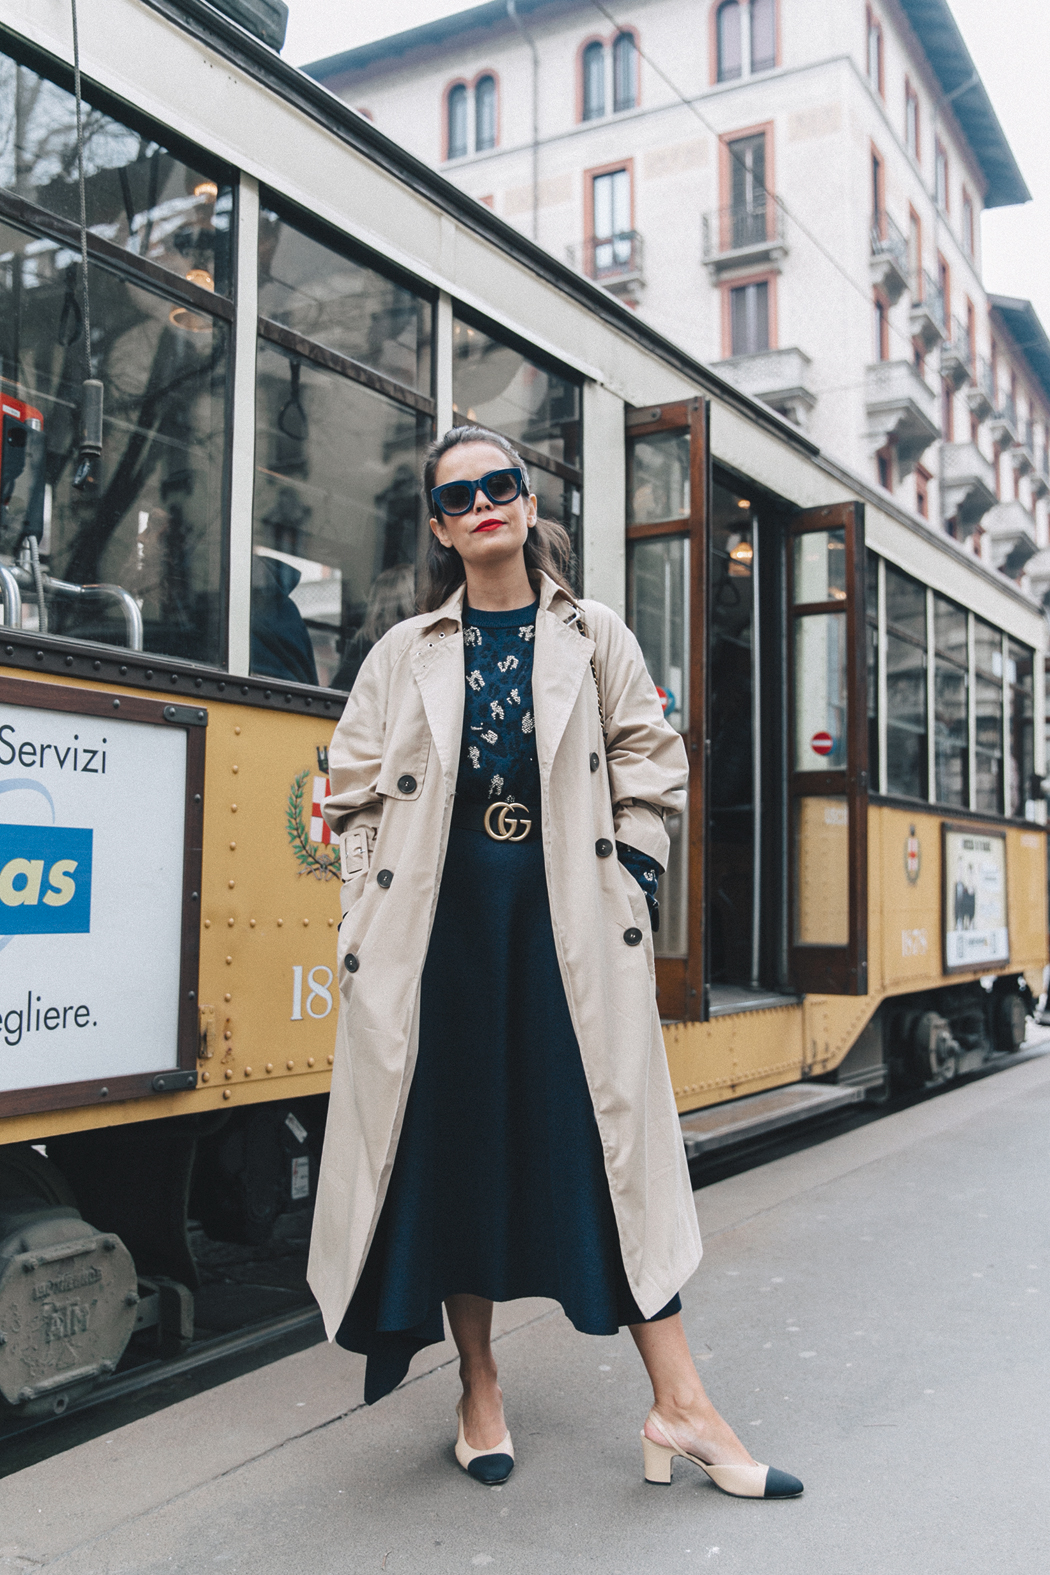 Trench_Edited-Leopard_Sweater-Midi_Skirt-Chanel_Slingback_Shoes-Chanel_Vintage_Bag-Ouftit_Streetstyle-44